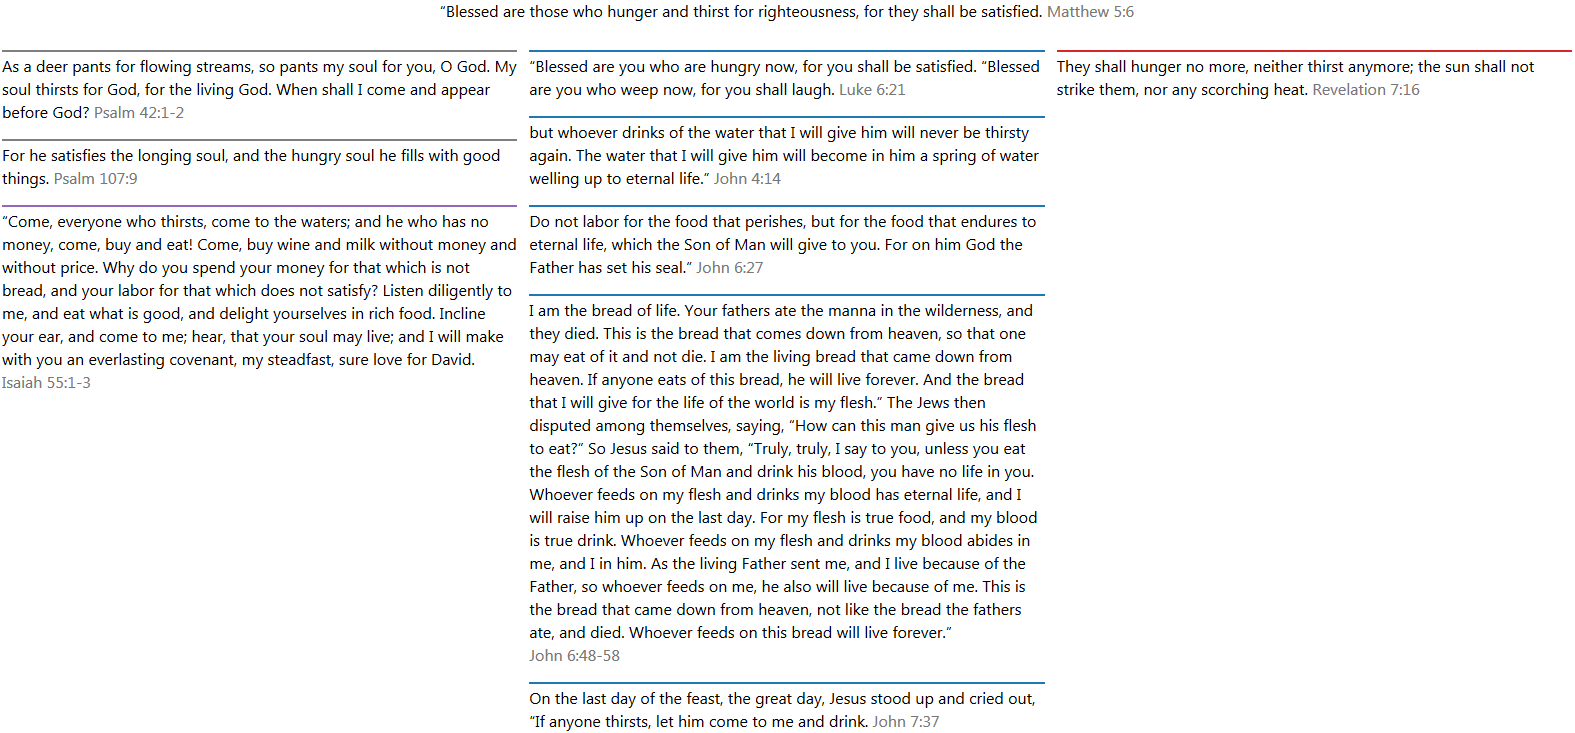 Matthew 5:5 with three columns of text.